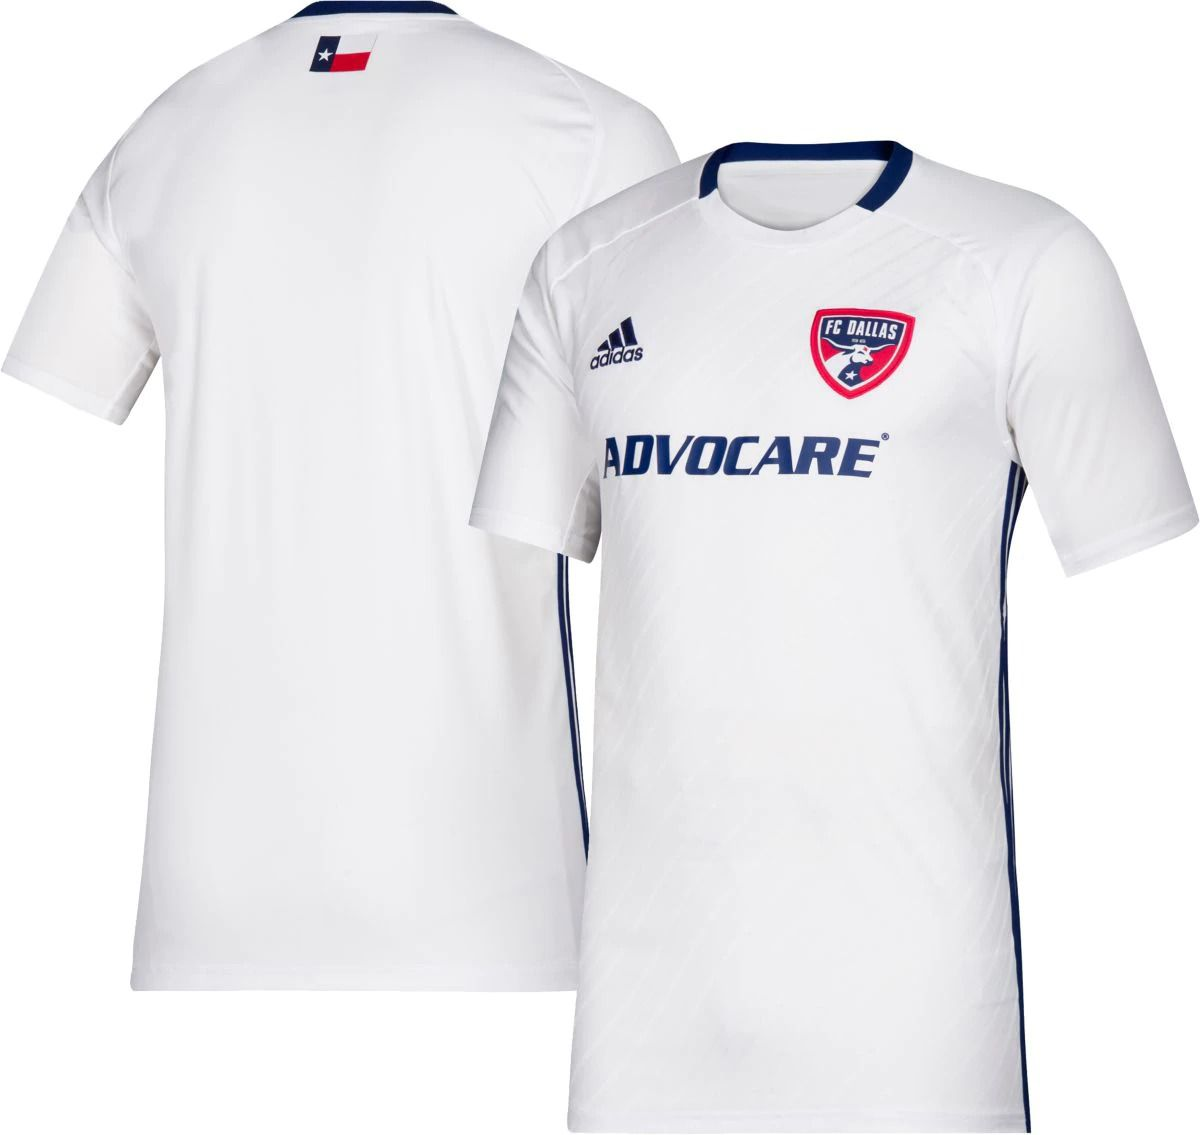 buy online 7919d c9c36 MLS Uniforms 2019: The new primary and secondary kits for ...